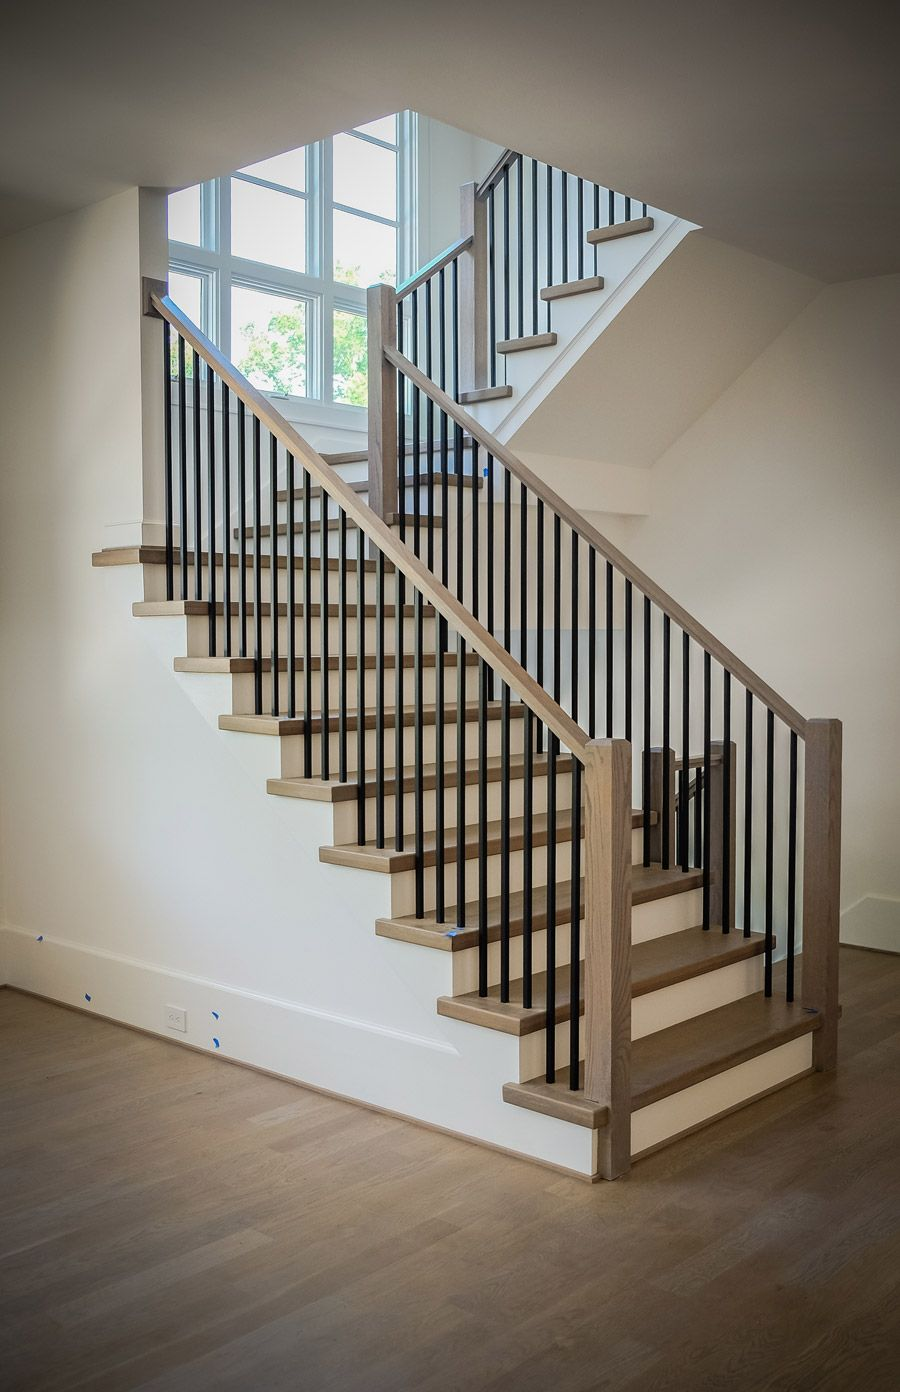 Best Metal Baluster System In 2020 Stair Railing Design 640 x 480